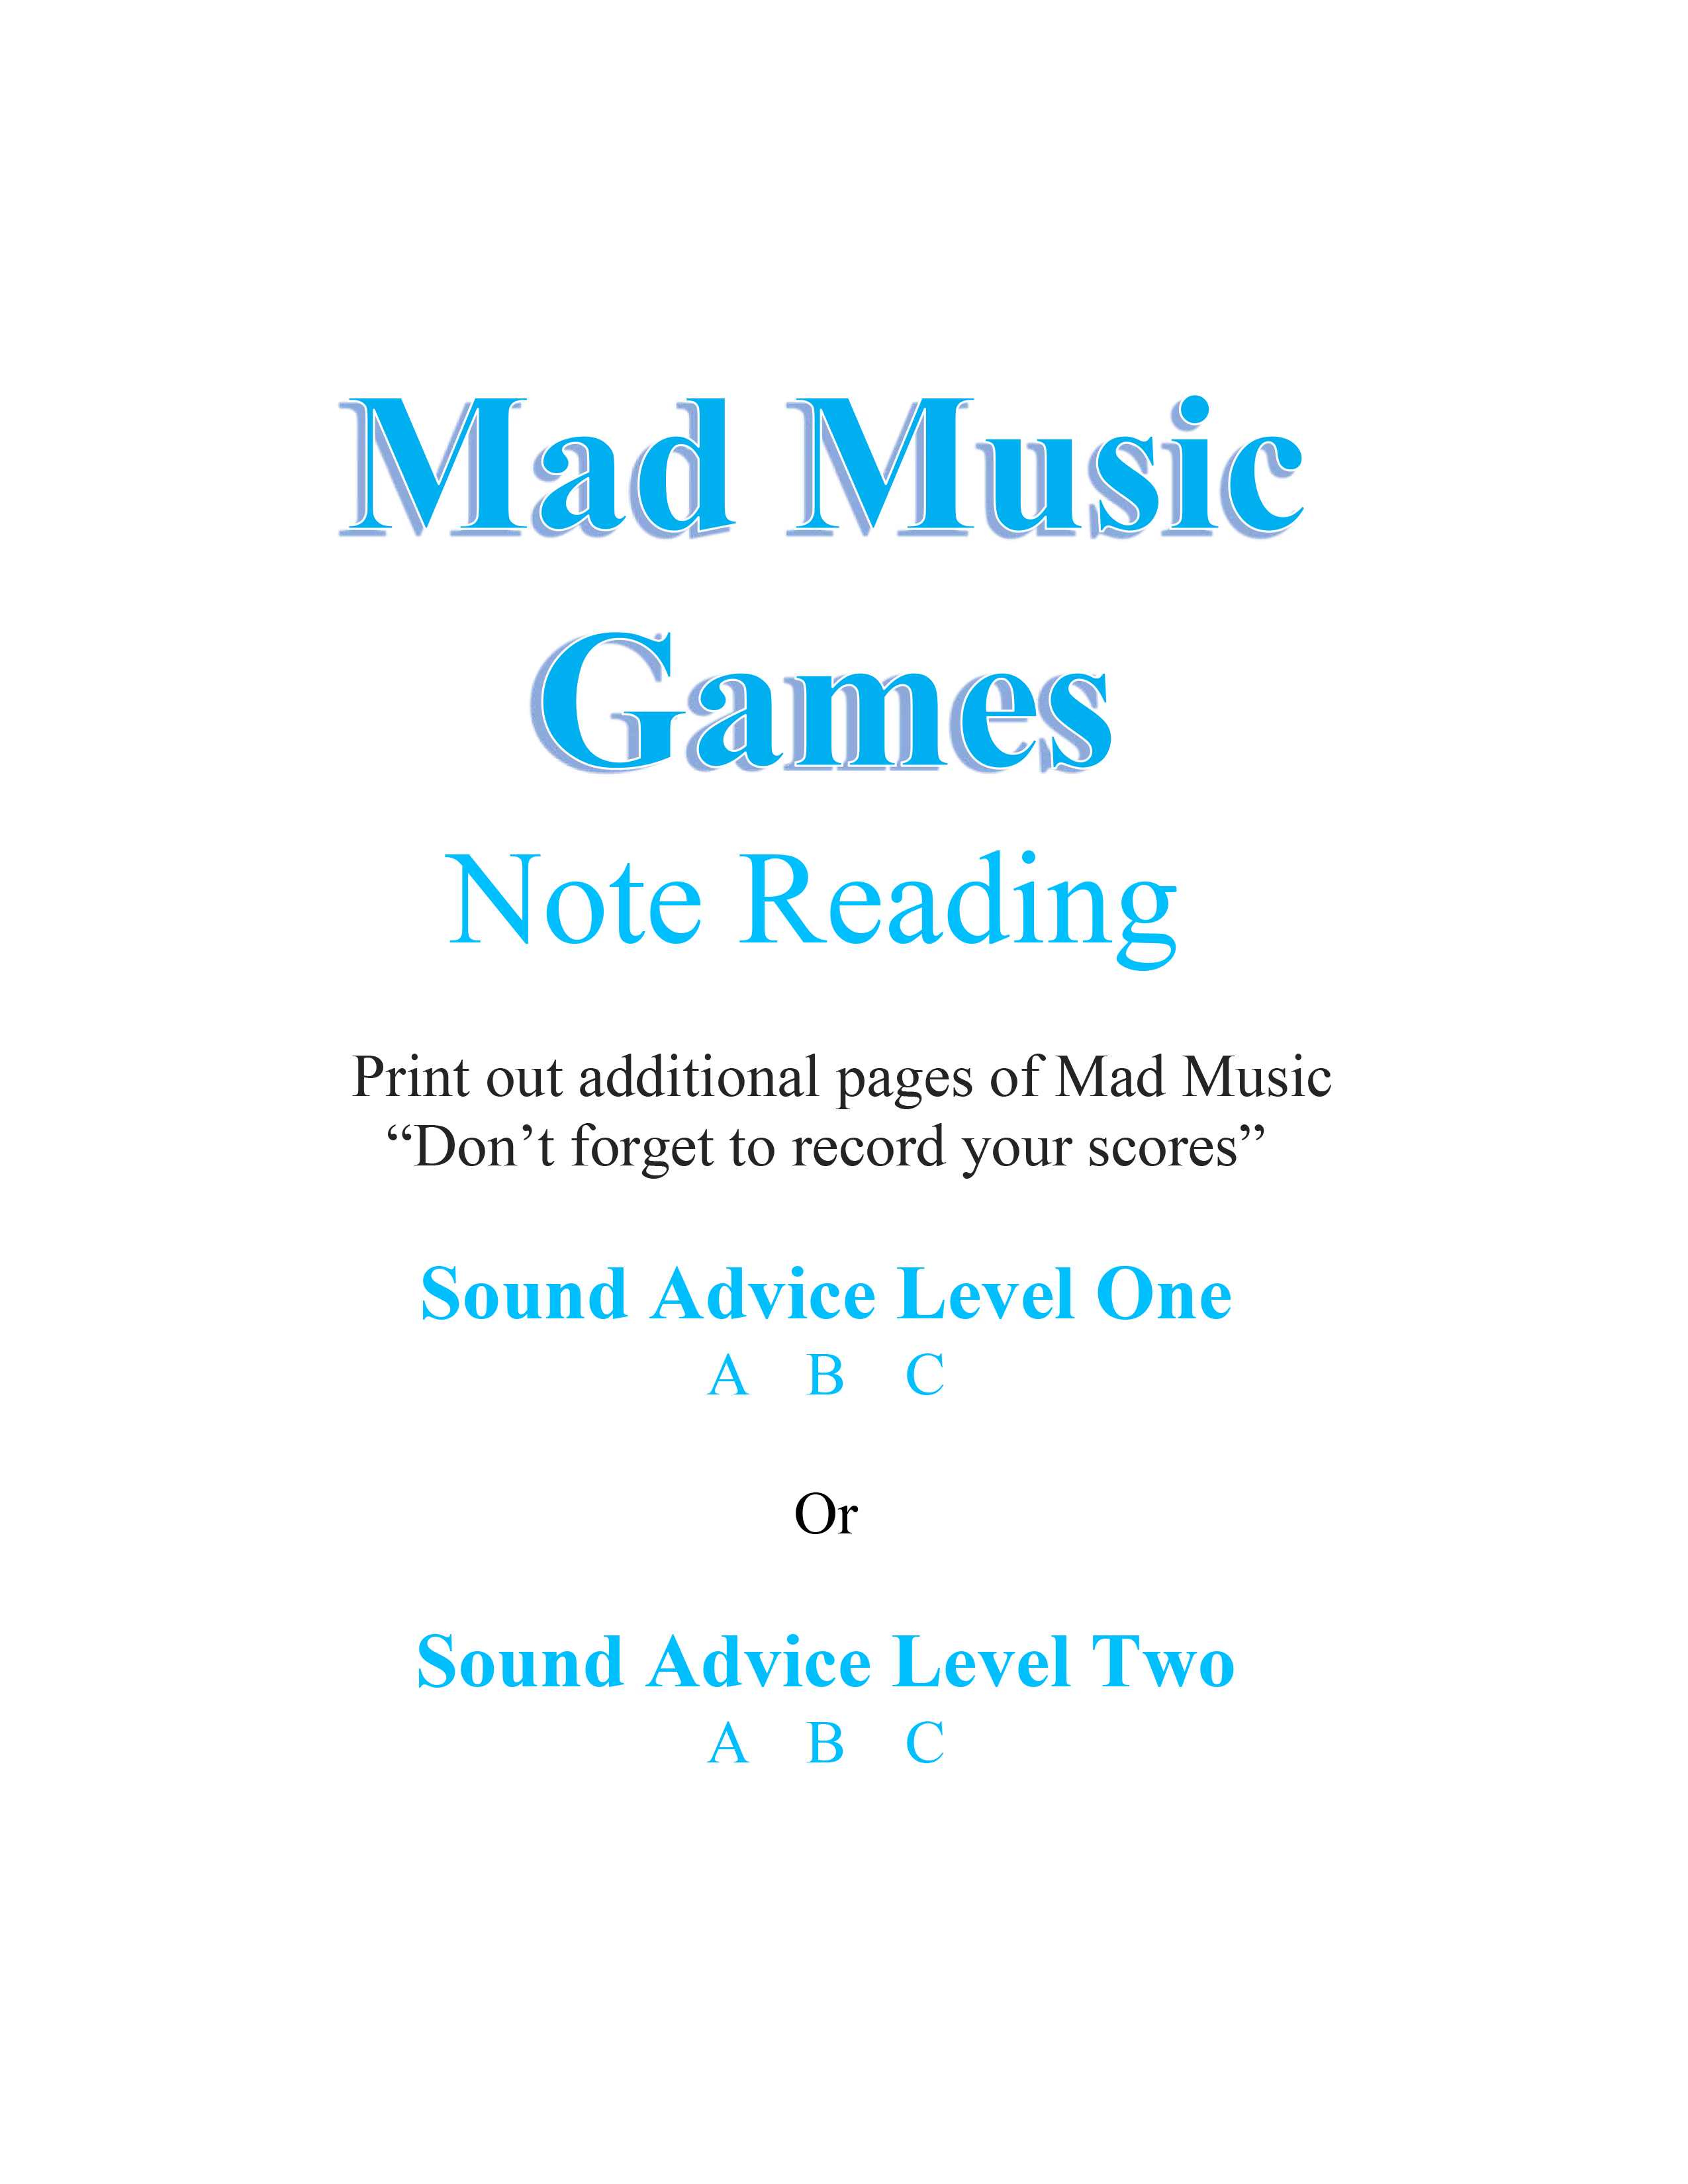 Mad Music Games - Note Reading